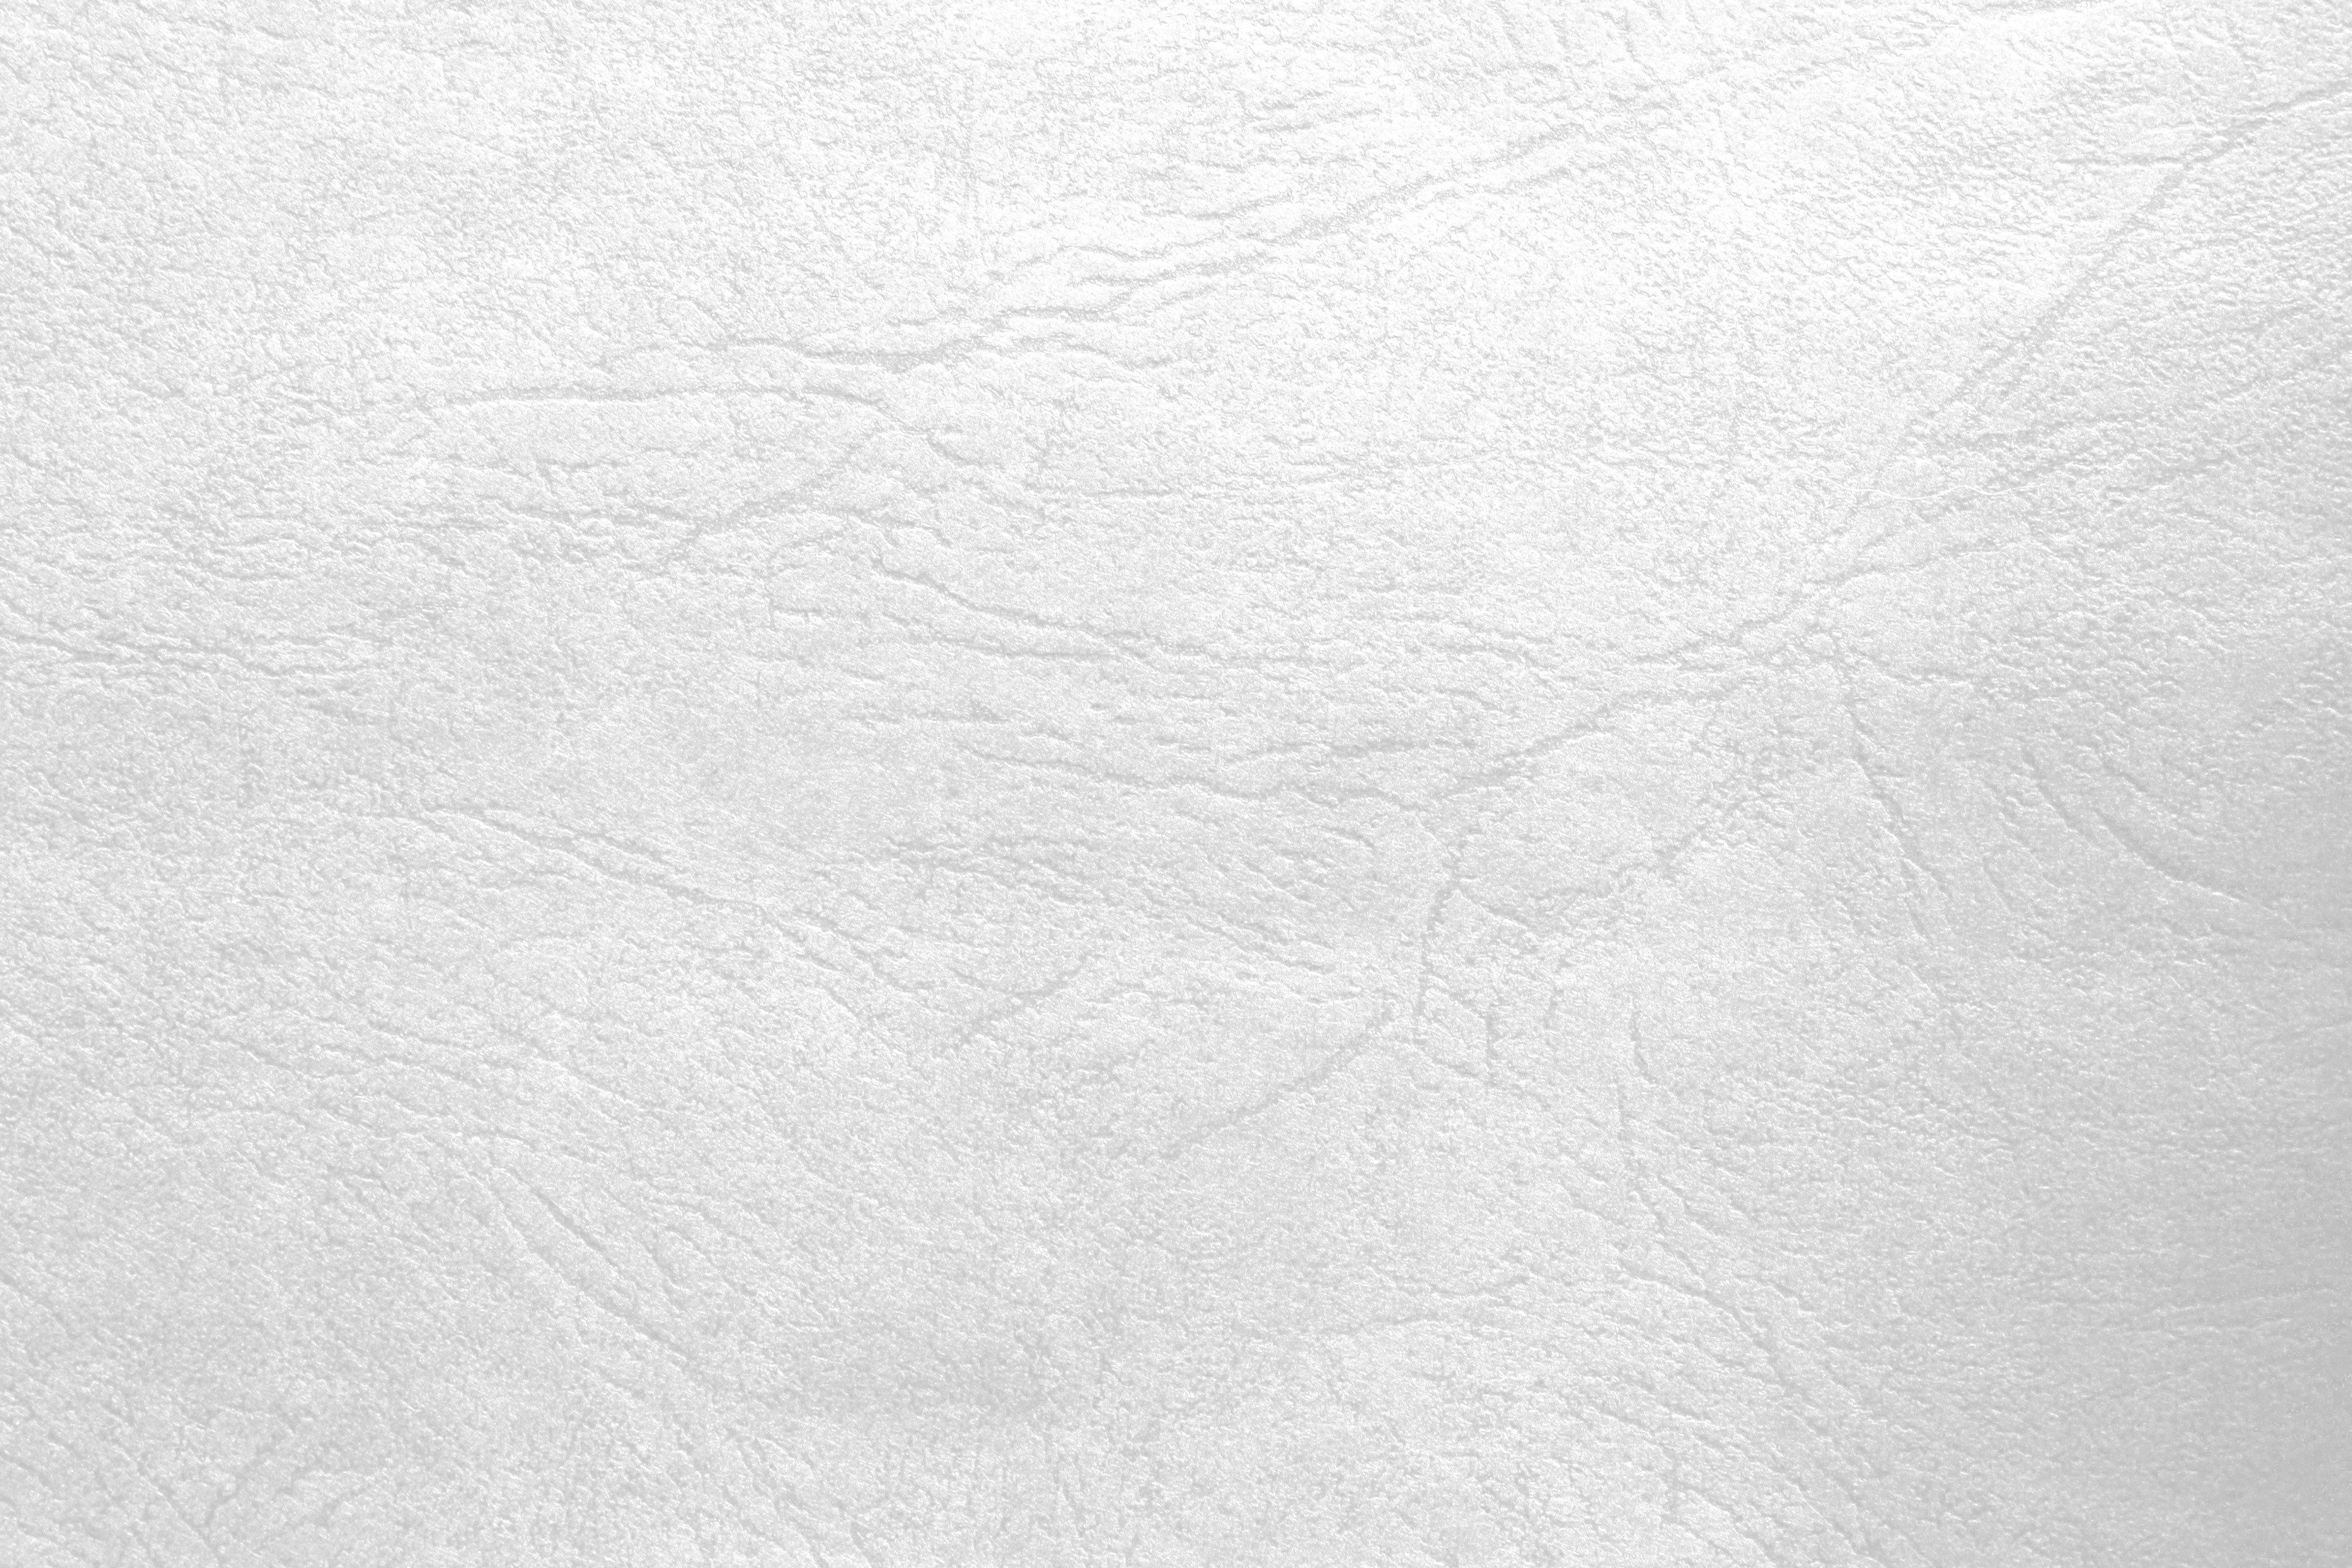 leather texture white texture desktop backgrounds white leather tower